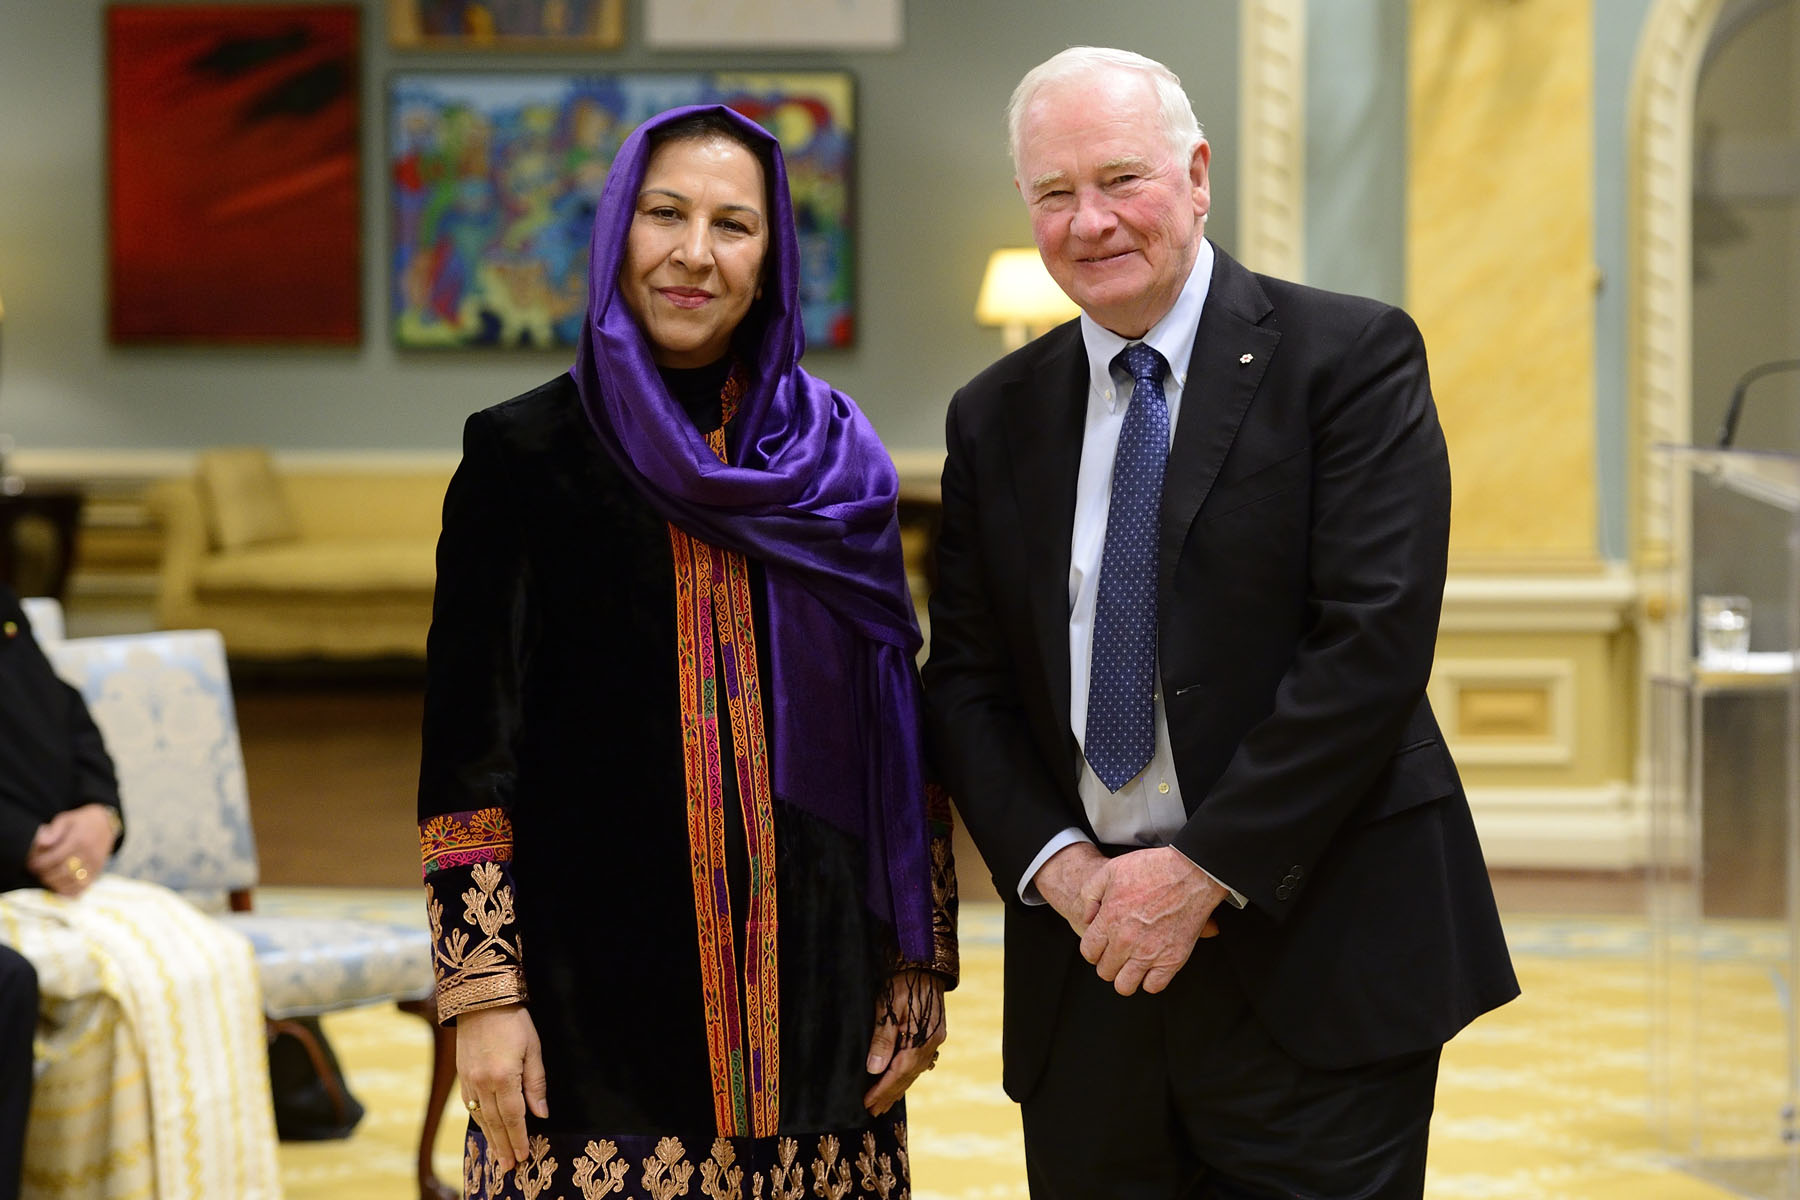 Her Excellency Shinkai Karokhail, Ambassador of the Islamic Republic of Afghanistan was the last to present her letters of credence.